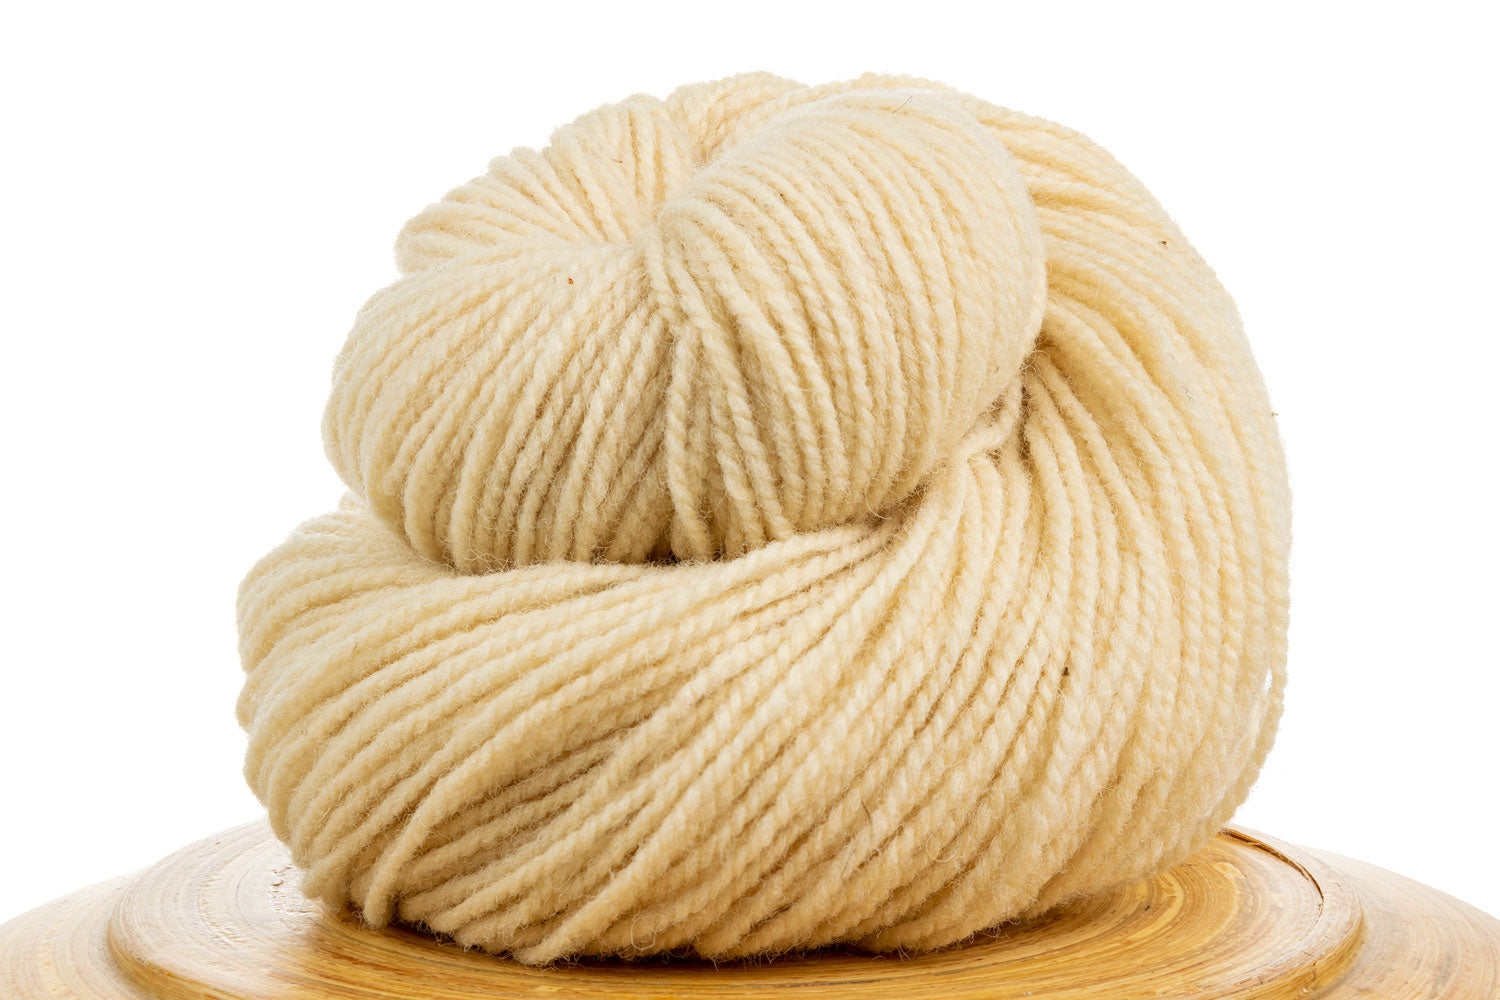 Winfield Canadian hand-dyed wool yarn in Natural, natural cream-coloured wool